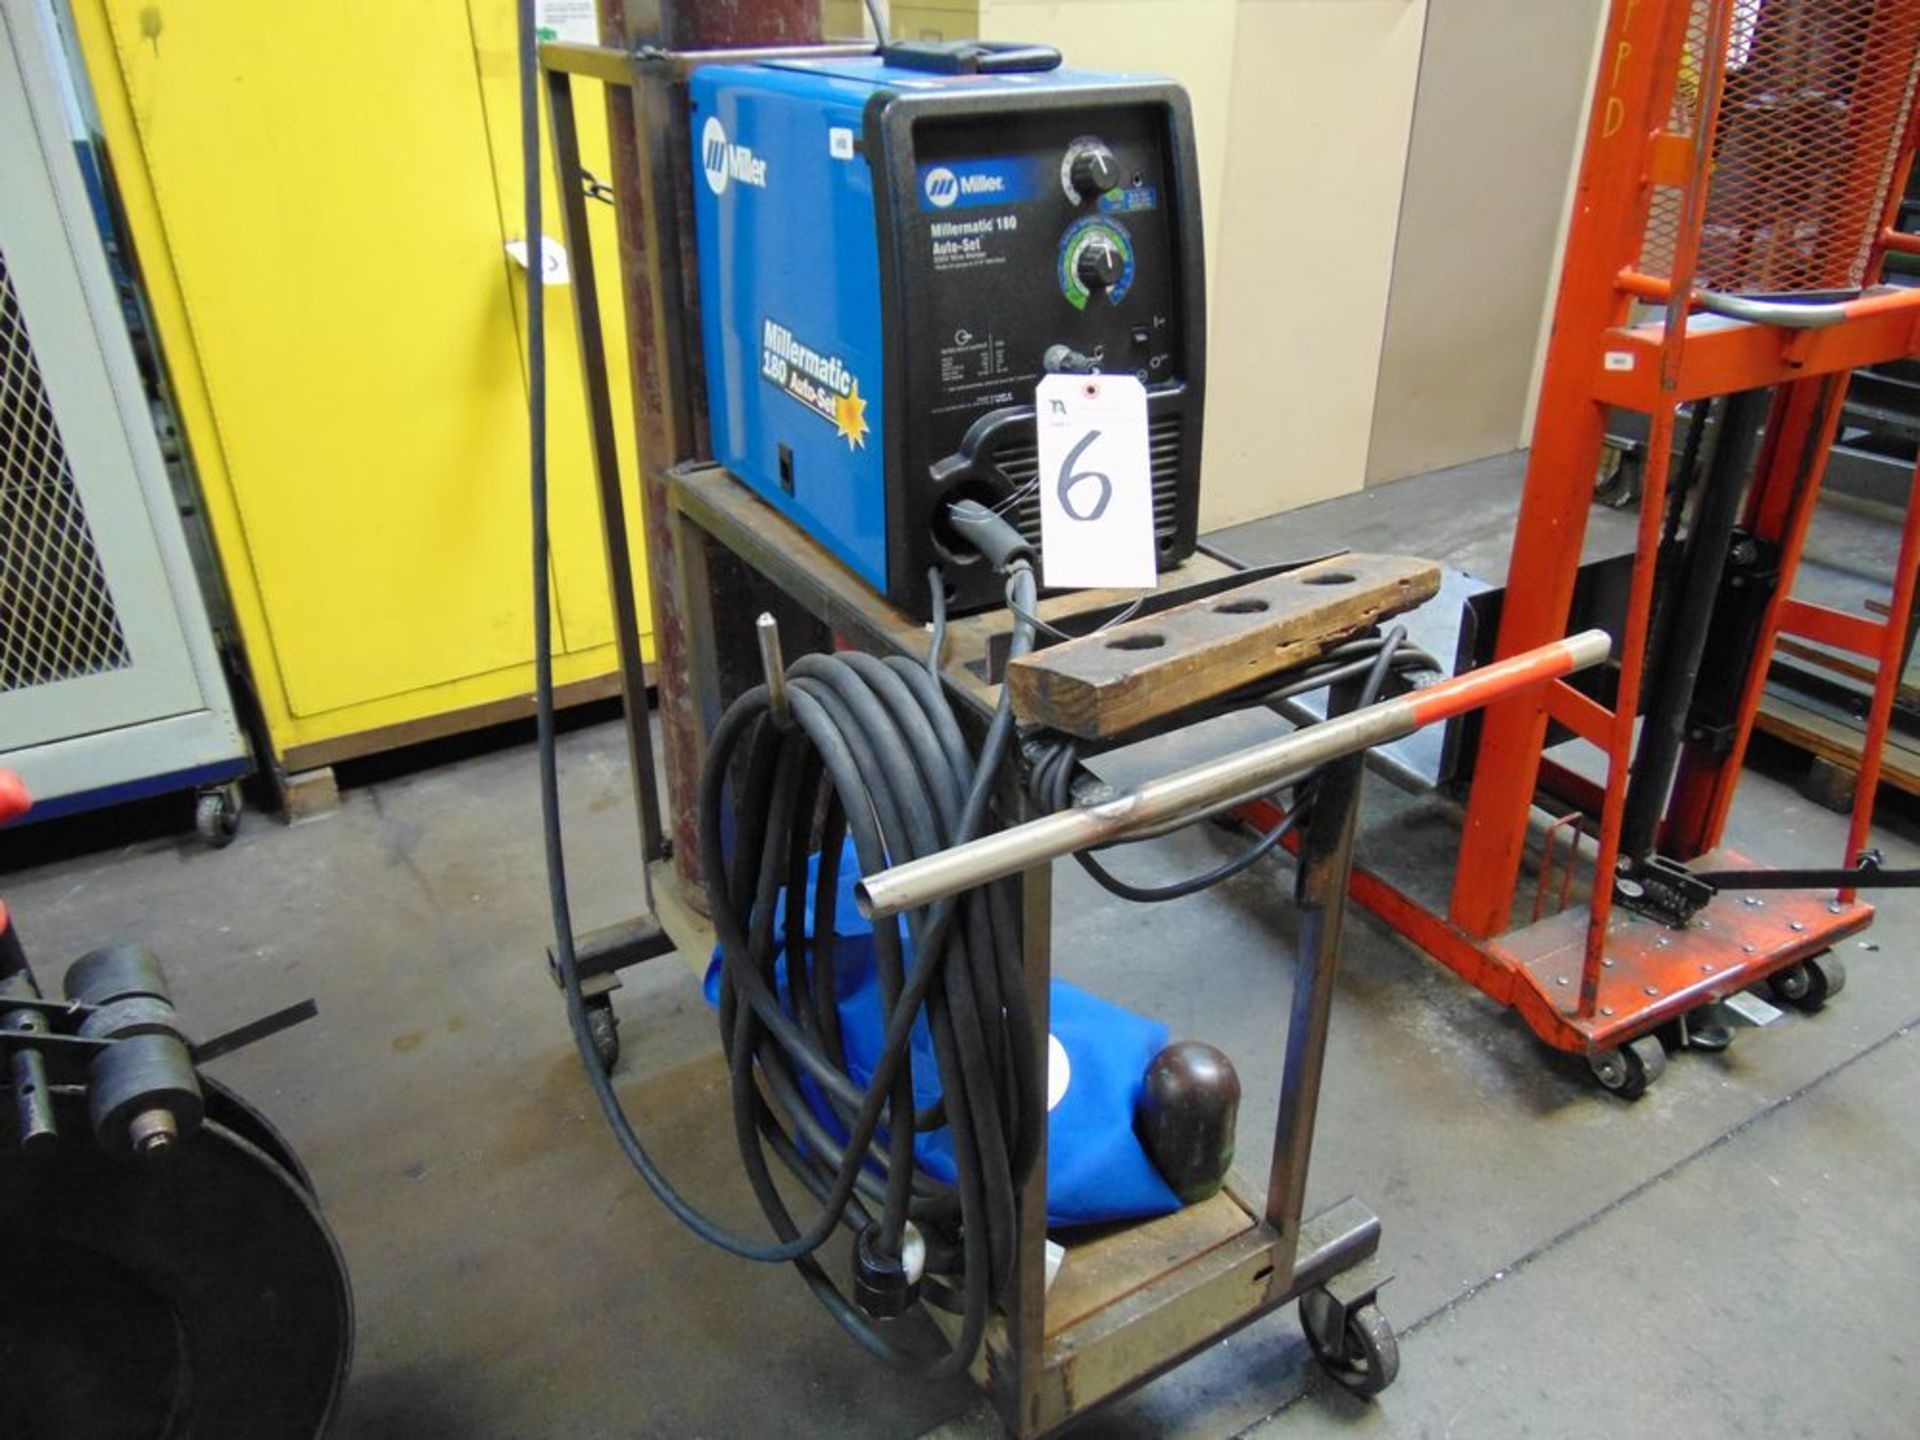 Lot 6 - Miller mod. Millermatic 180, 180 Amp Wire Welder (No Tank); S/N LK240887N